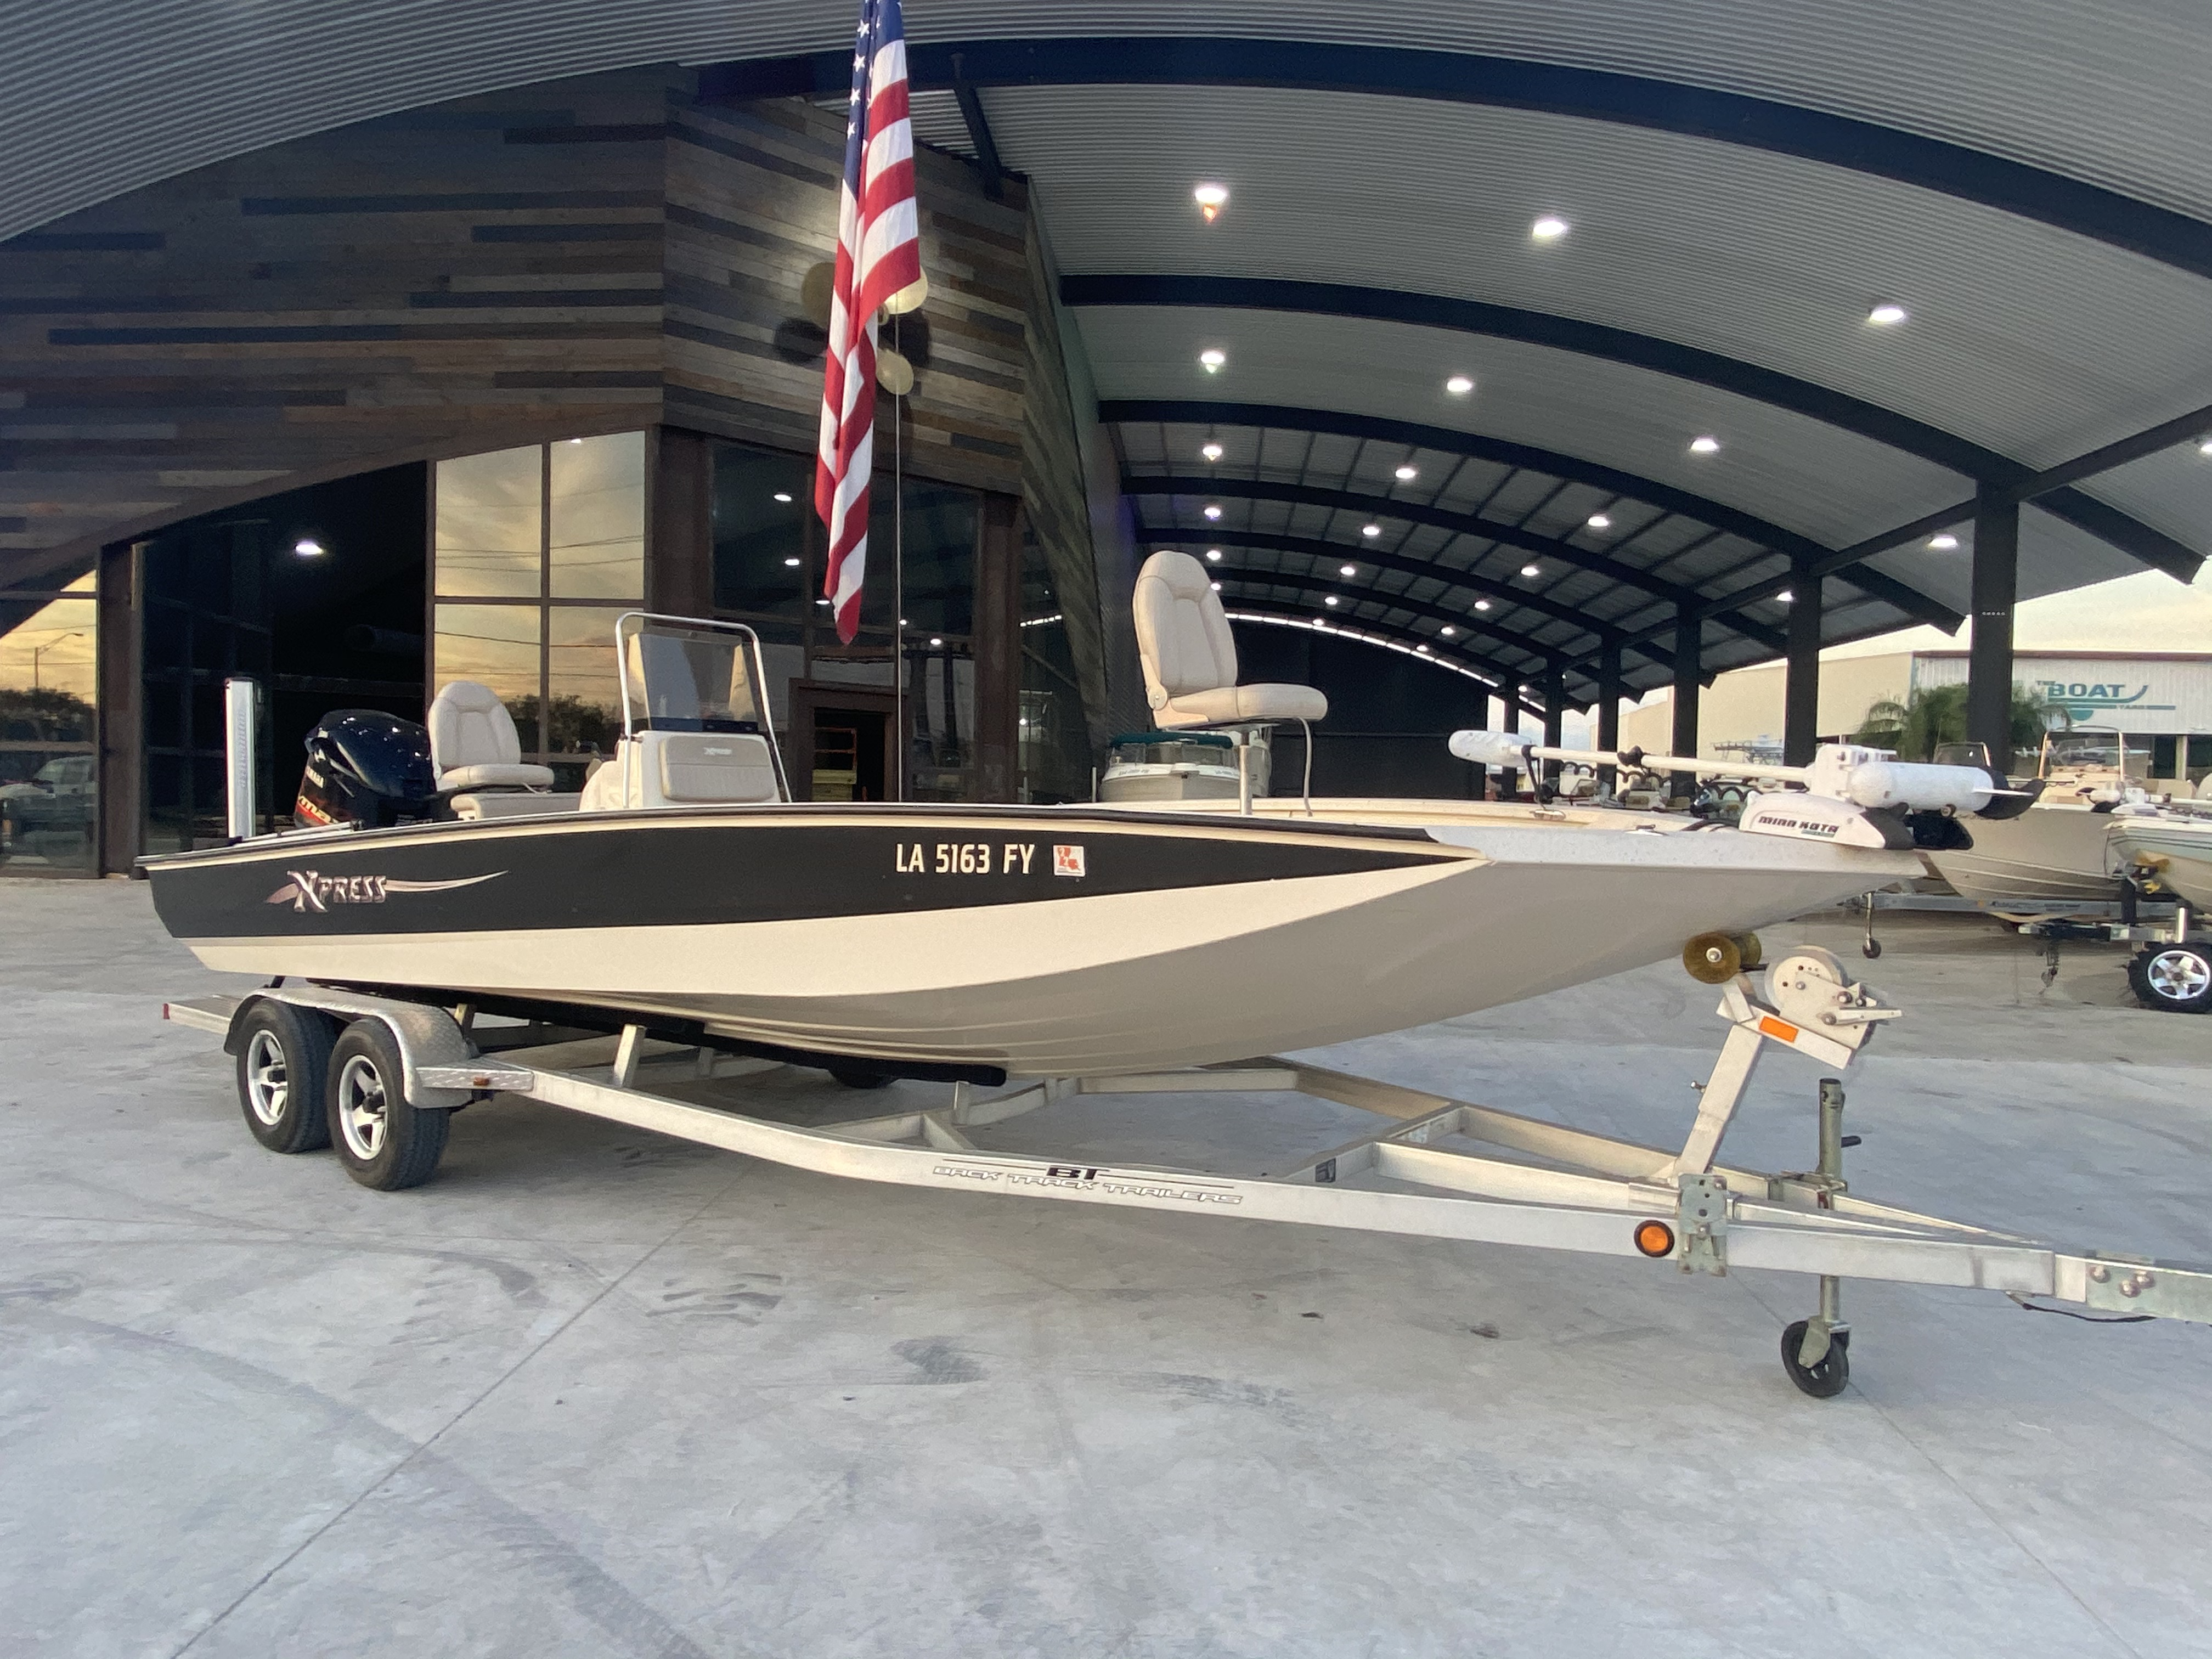 2012 Xpress boat for sale, model of the boat is H24B & Image # 2 of 17